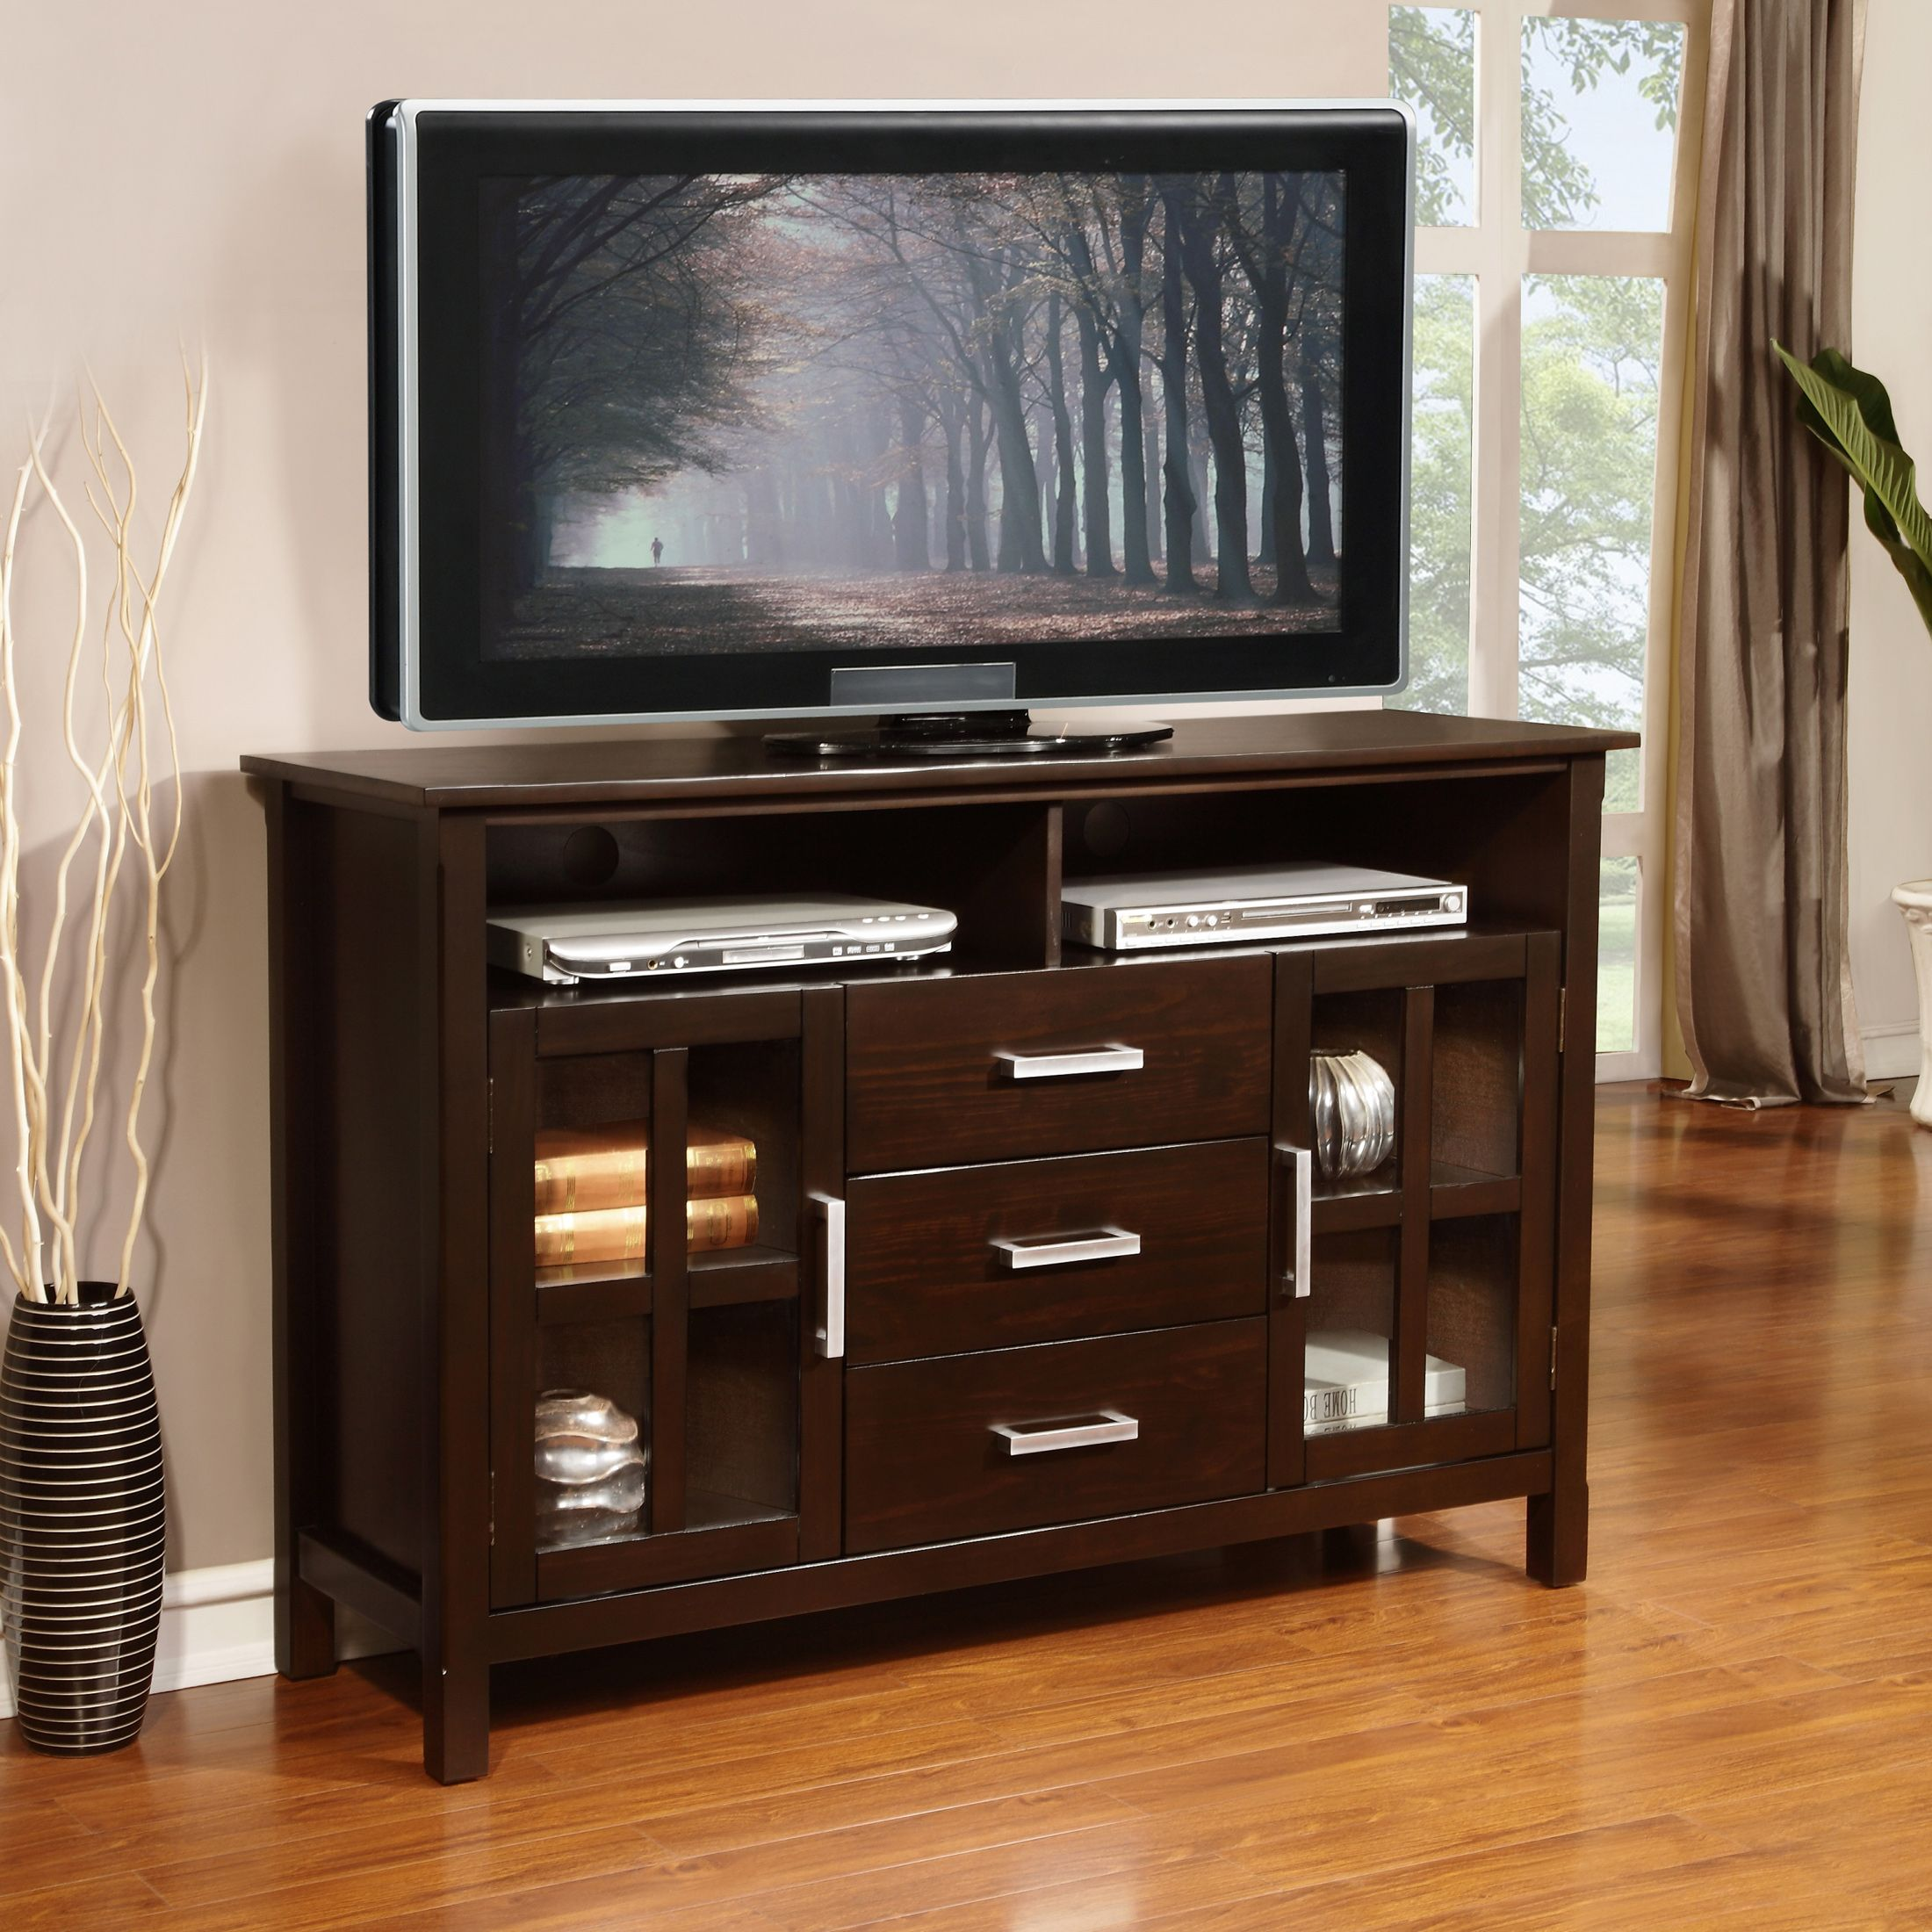 Complete Your Living Room With The Contemporary Elegance Of Waterloo Tall Tv Stand A